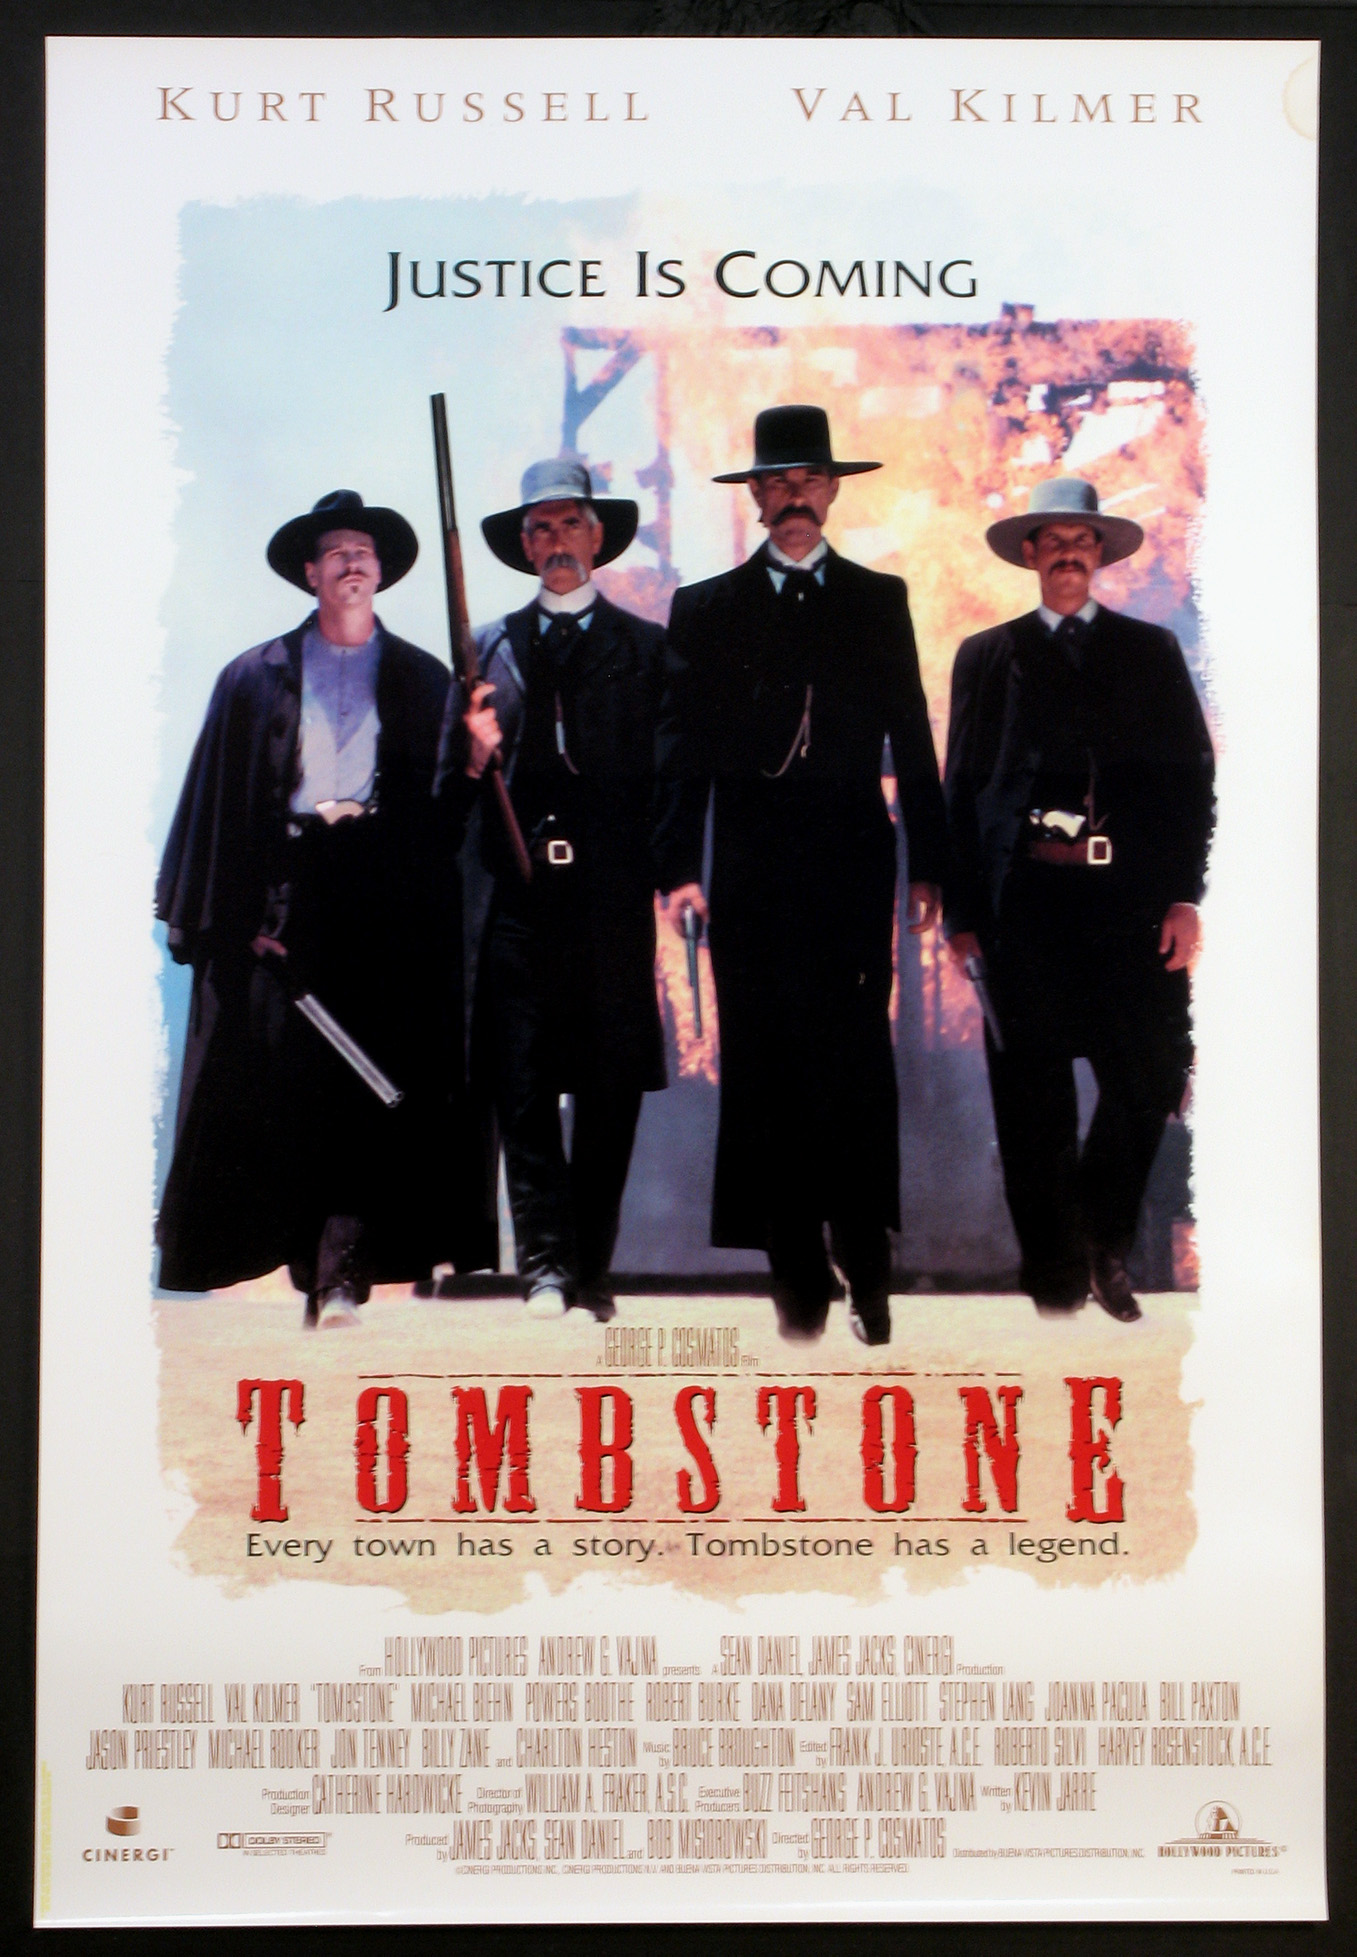 TOMBSTONE @ FilmPosters.com